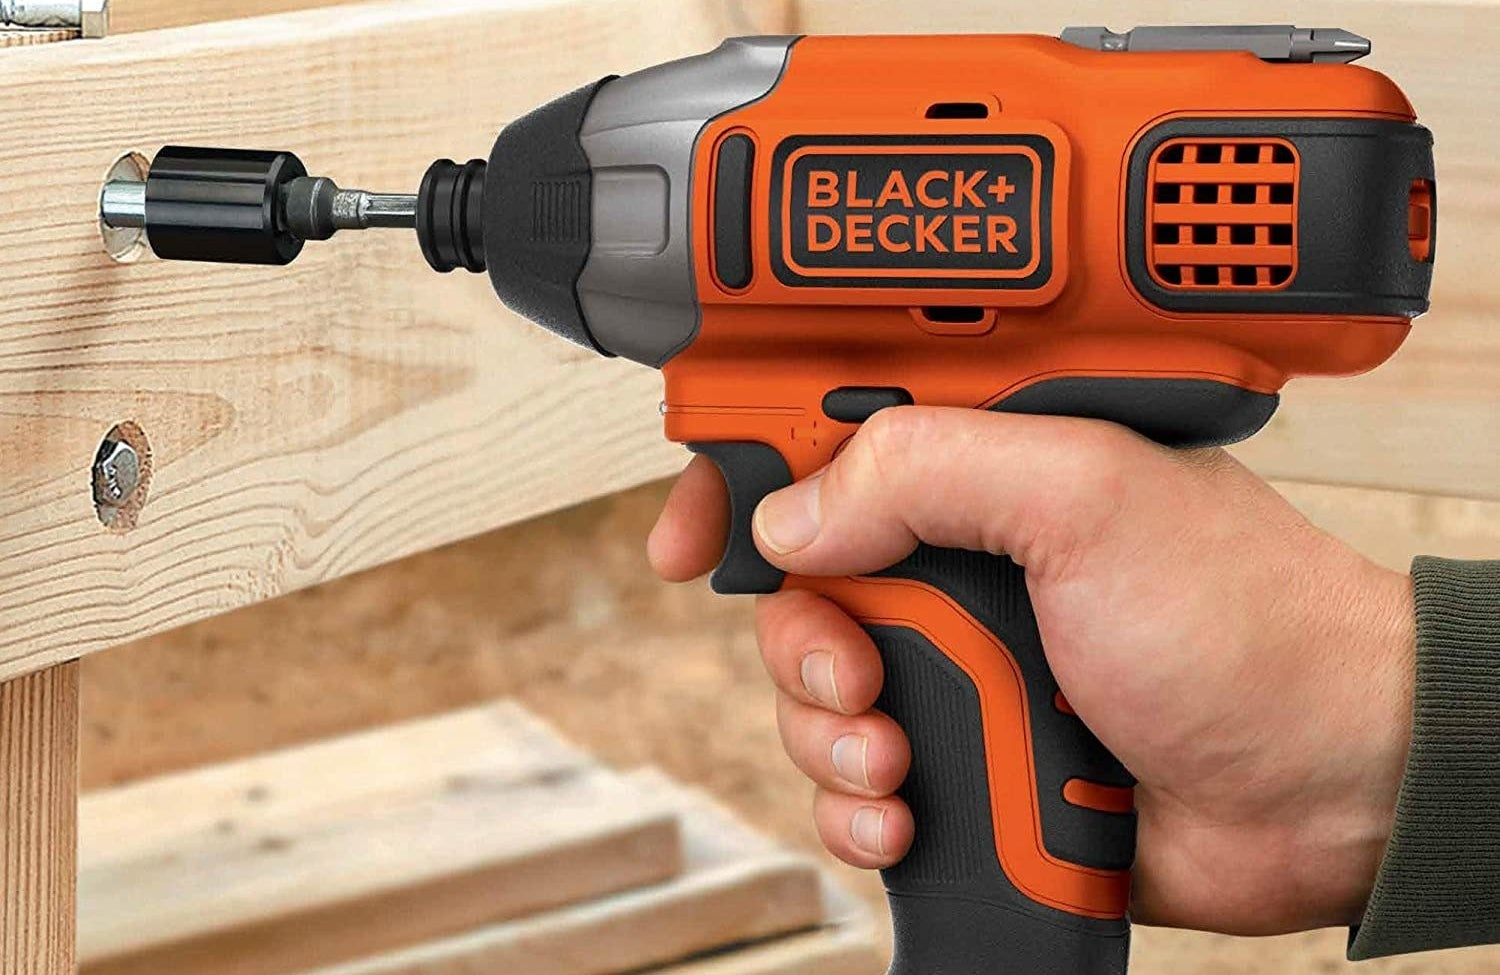 The Black + Decker cordless drill drilling into a piece of wood.